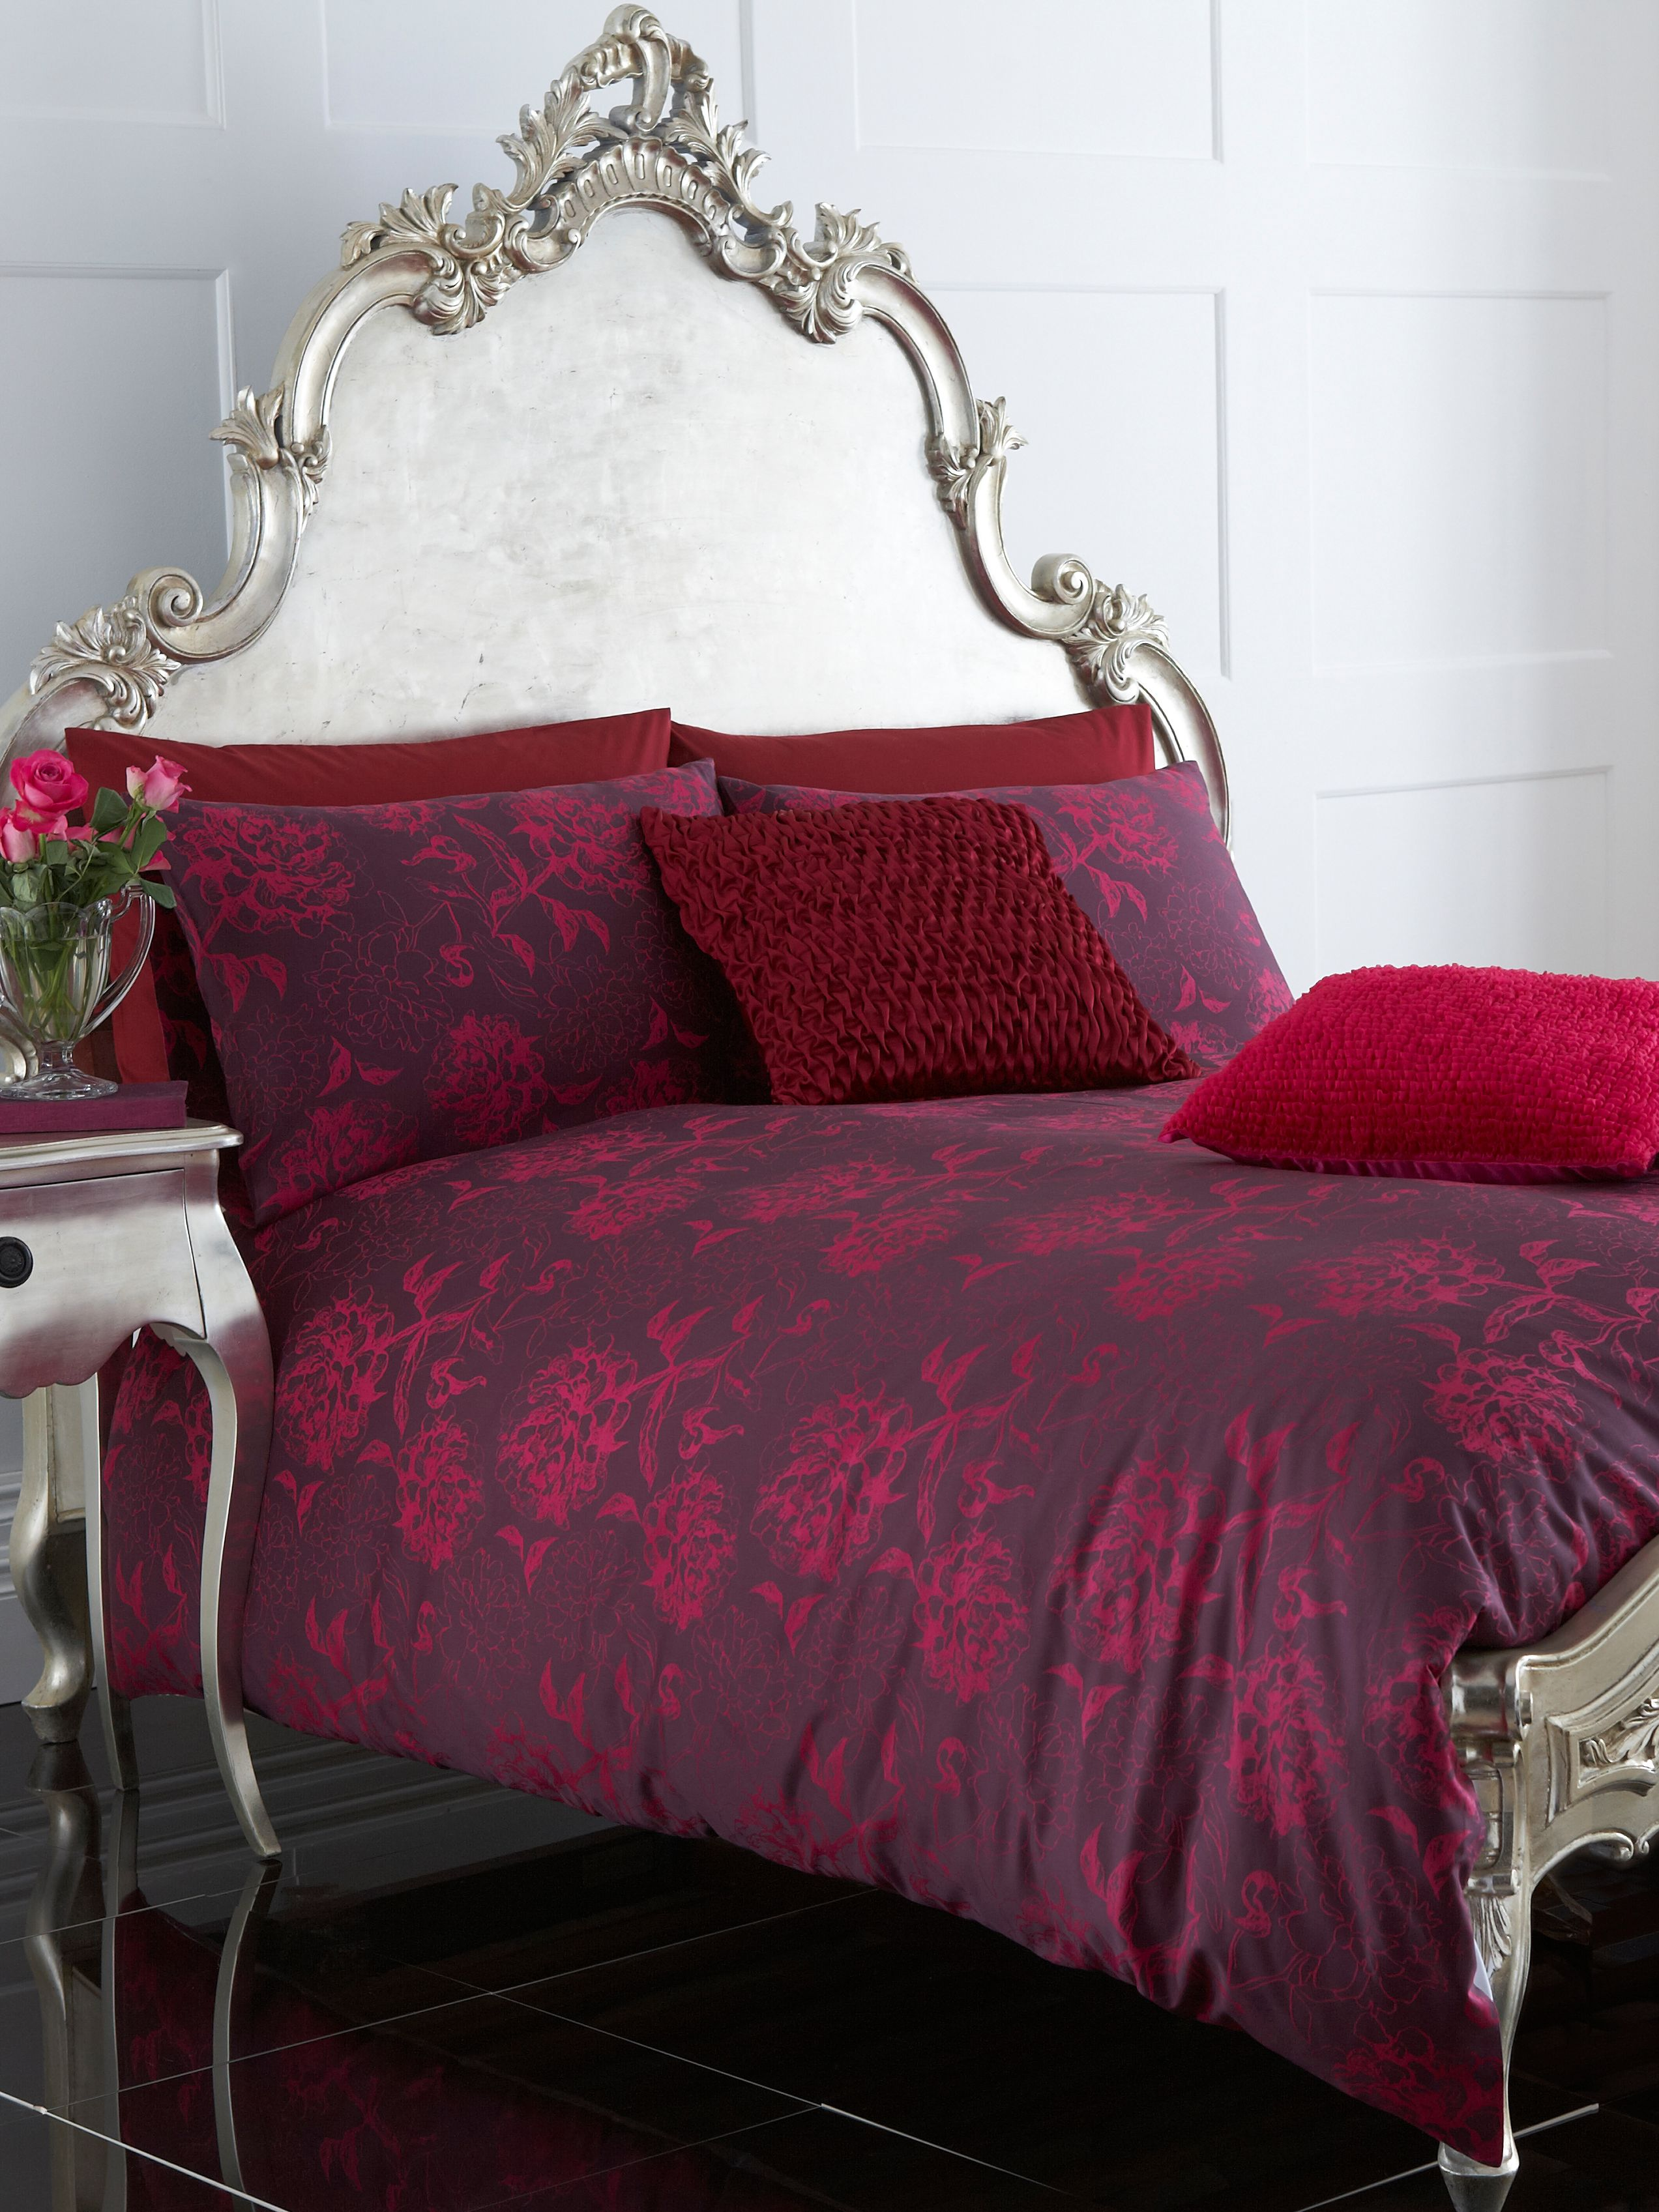 Peony Jacquard single duvet cover